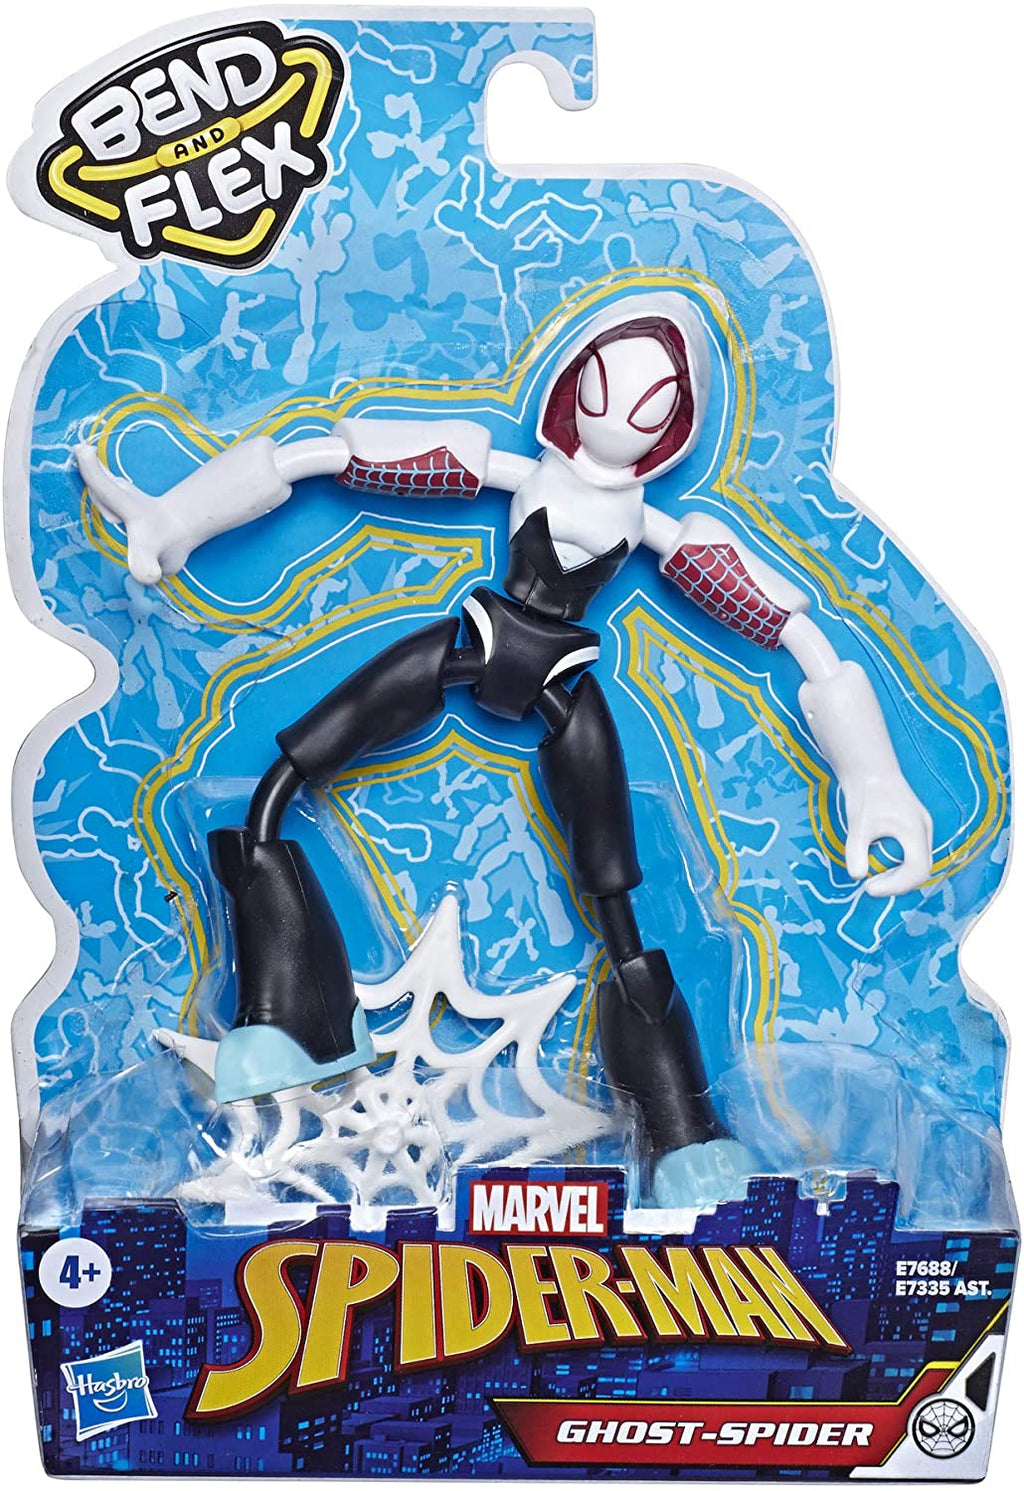 Spider-Man Marvel Bend and Flex Ghost-Spider Action Figure Toy